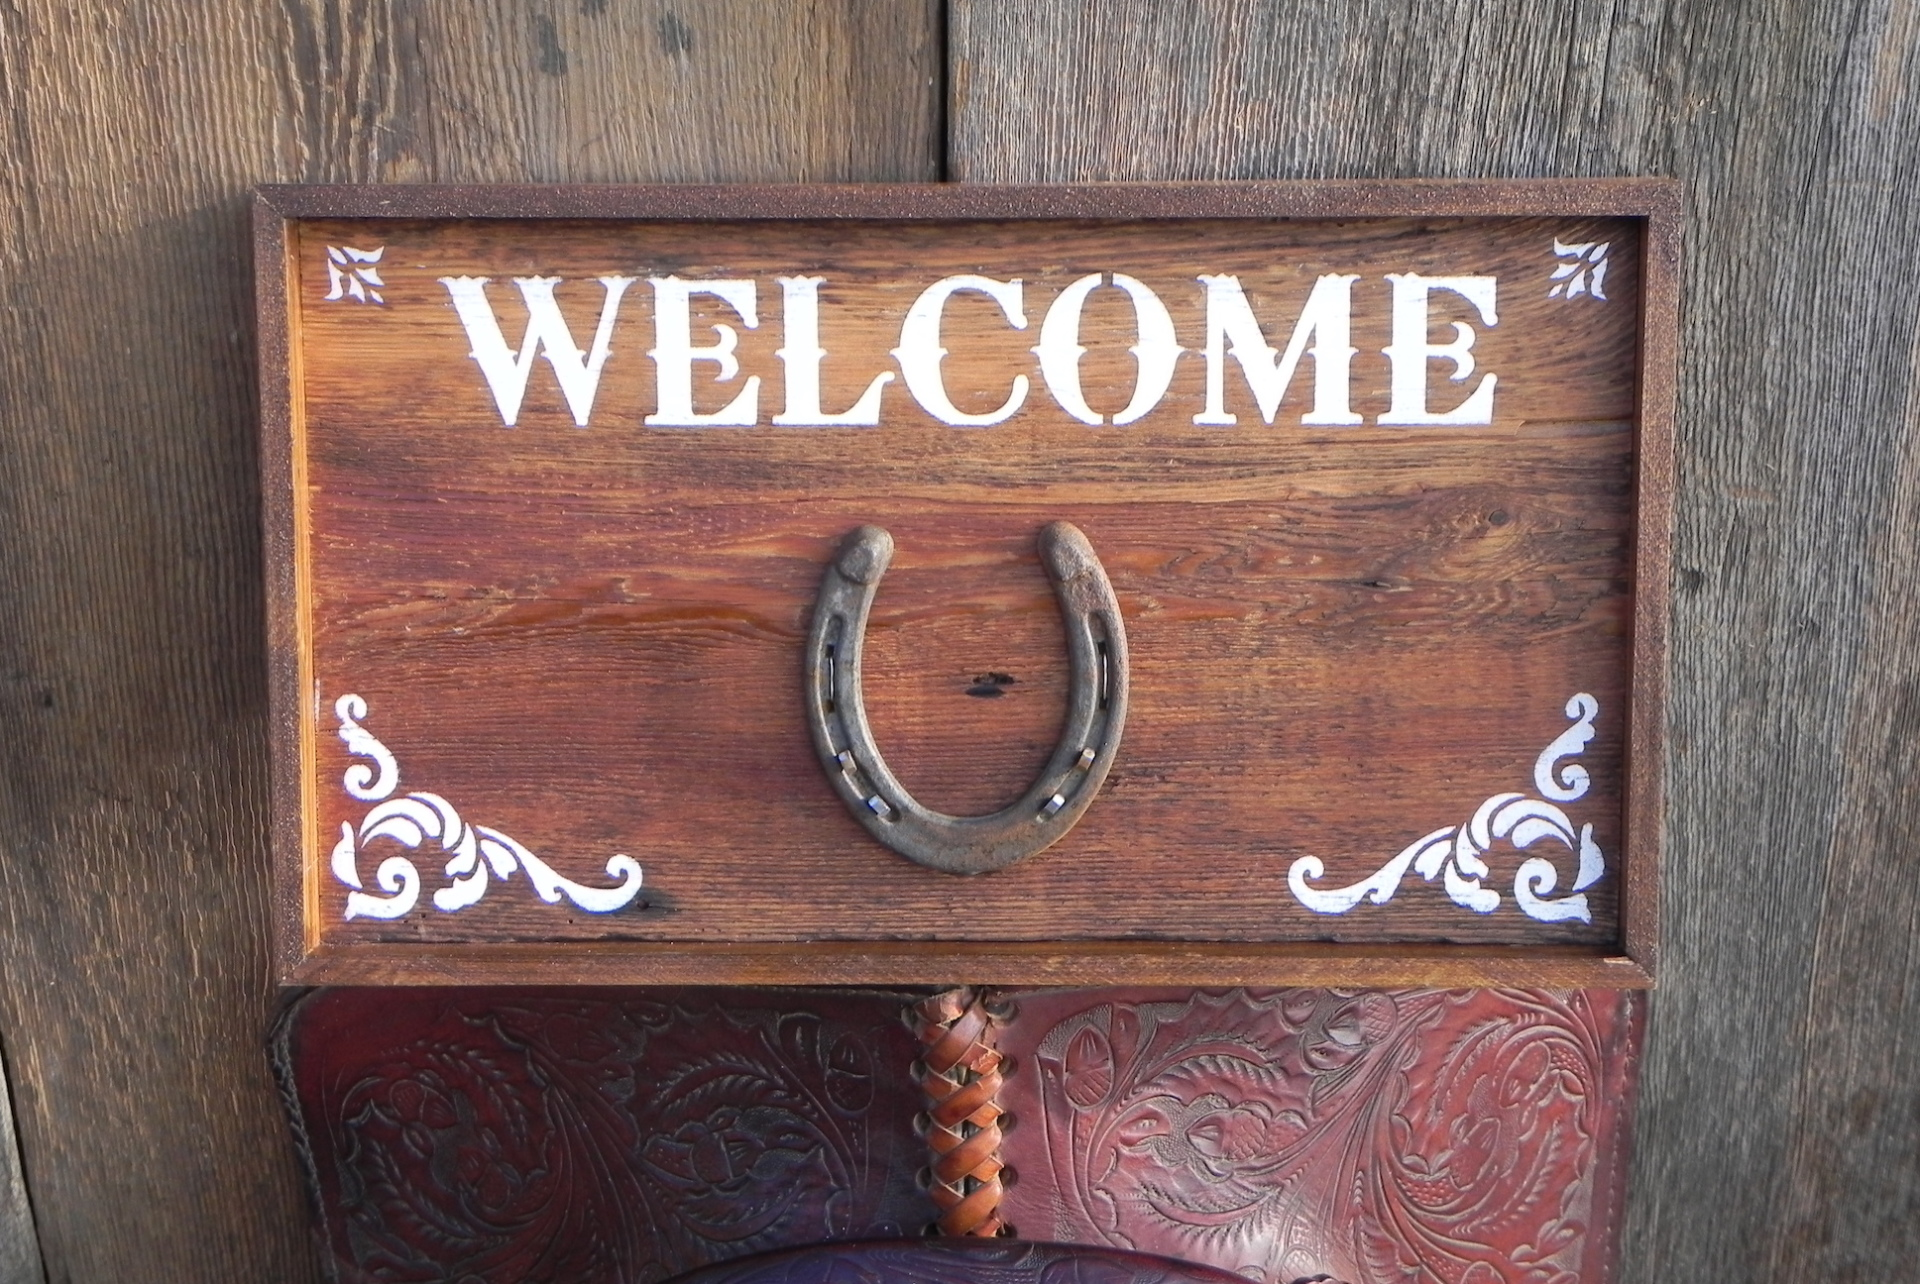 Western Signs for the Home, Western Welcome Sign, Horse and Equine Decor Ideas, Stable Style Decor, Handmade Wood Signs, Welcome Signs for the Home, Barn Signs, Stable Signs, Rustic Country Style Decor Ideas, Crow Bar D'signs